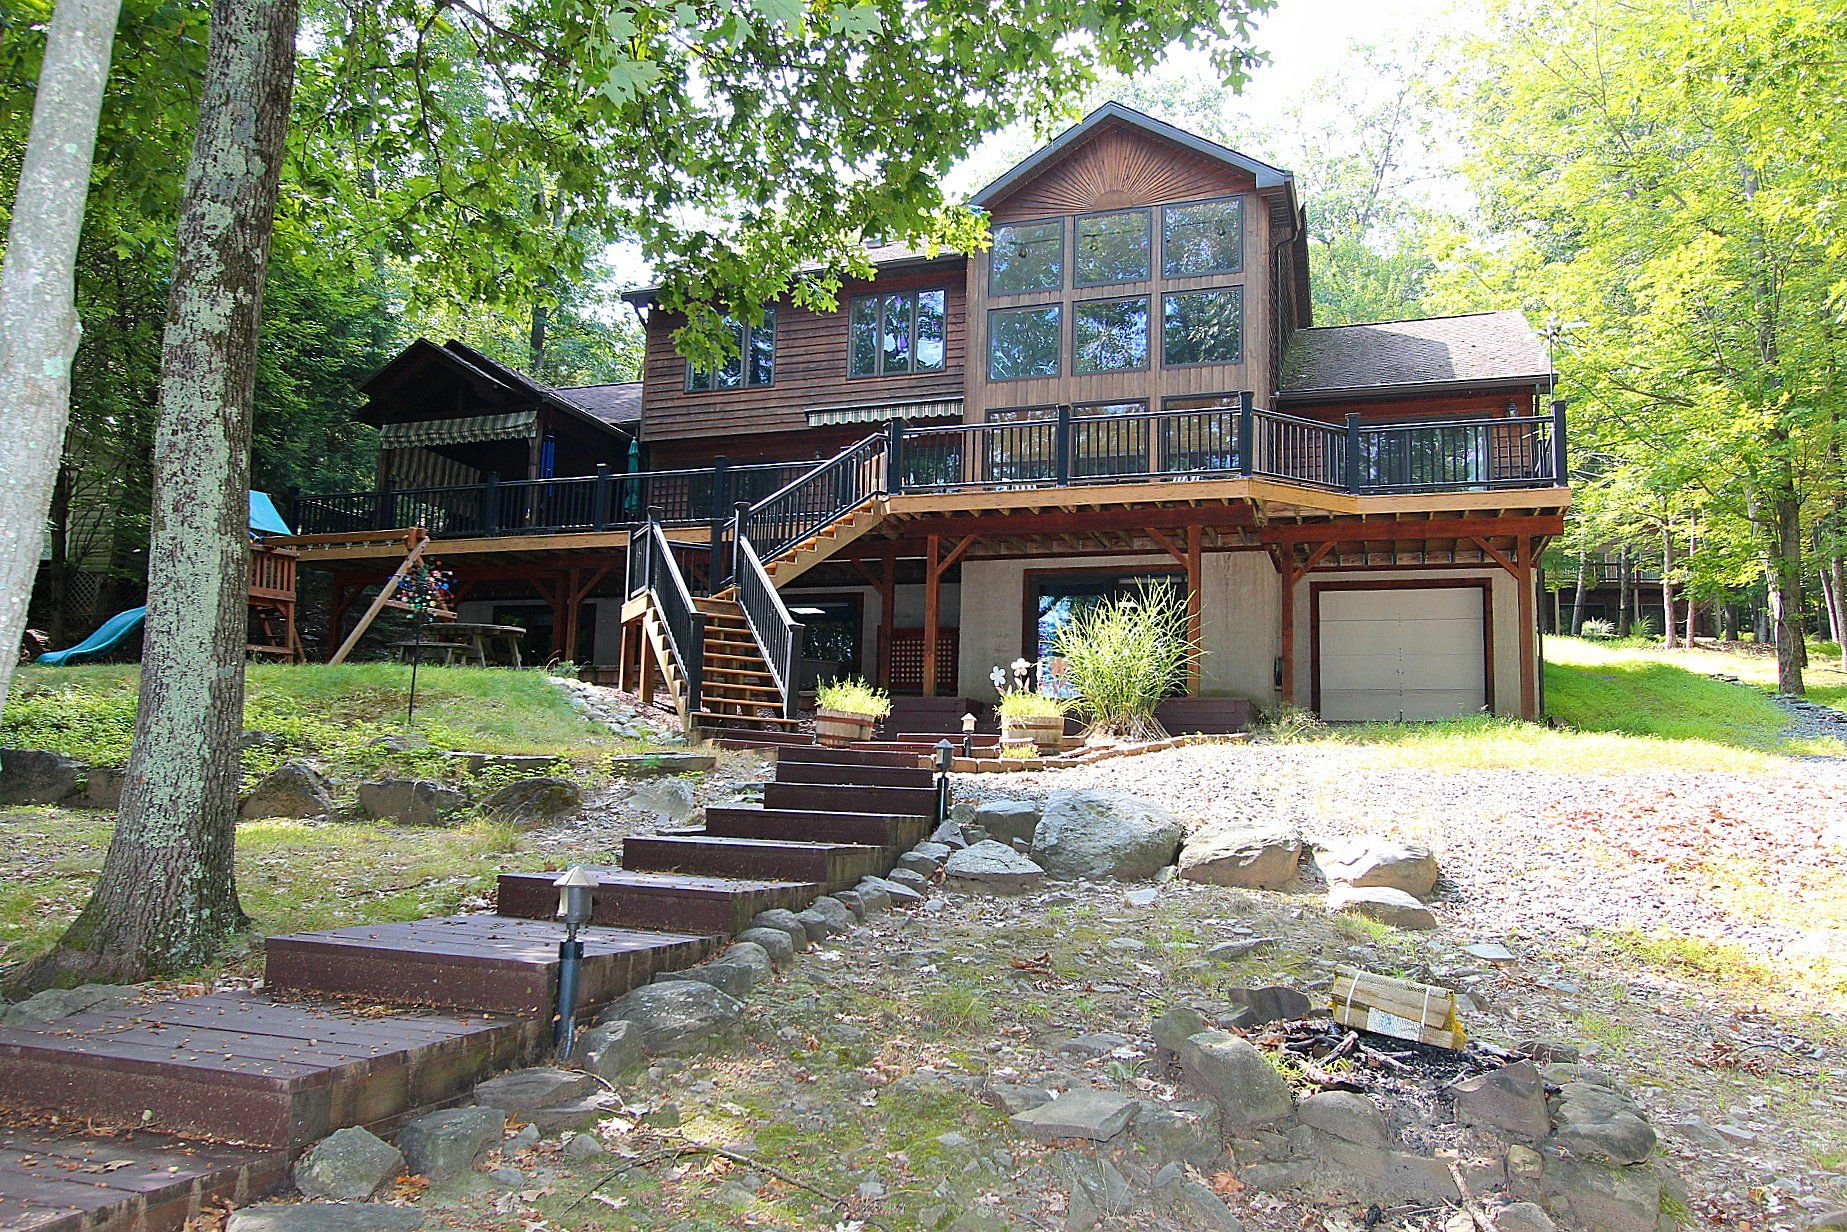 This spectacular home boasts 4000 sq' of finished living space with 88' of lake frontage.  The slope to the water is very gentle....a premium in this hilly terrain around Lake Wallenpaupack